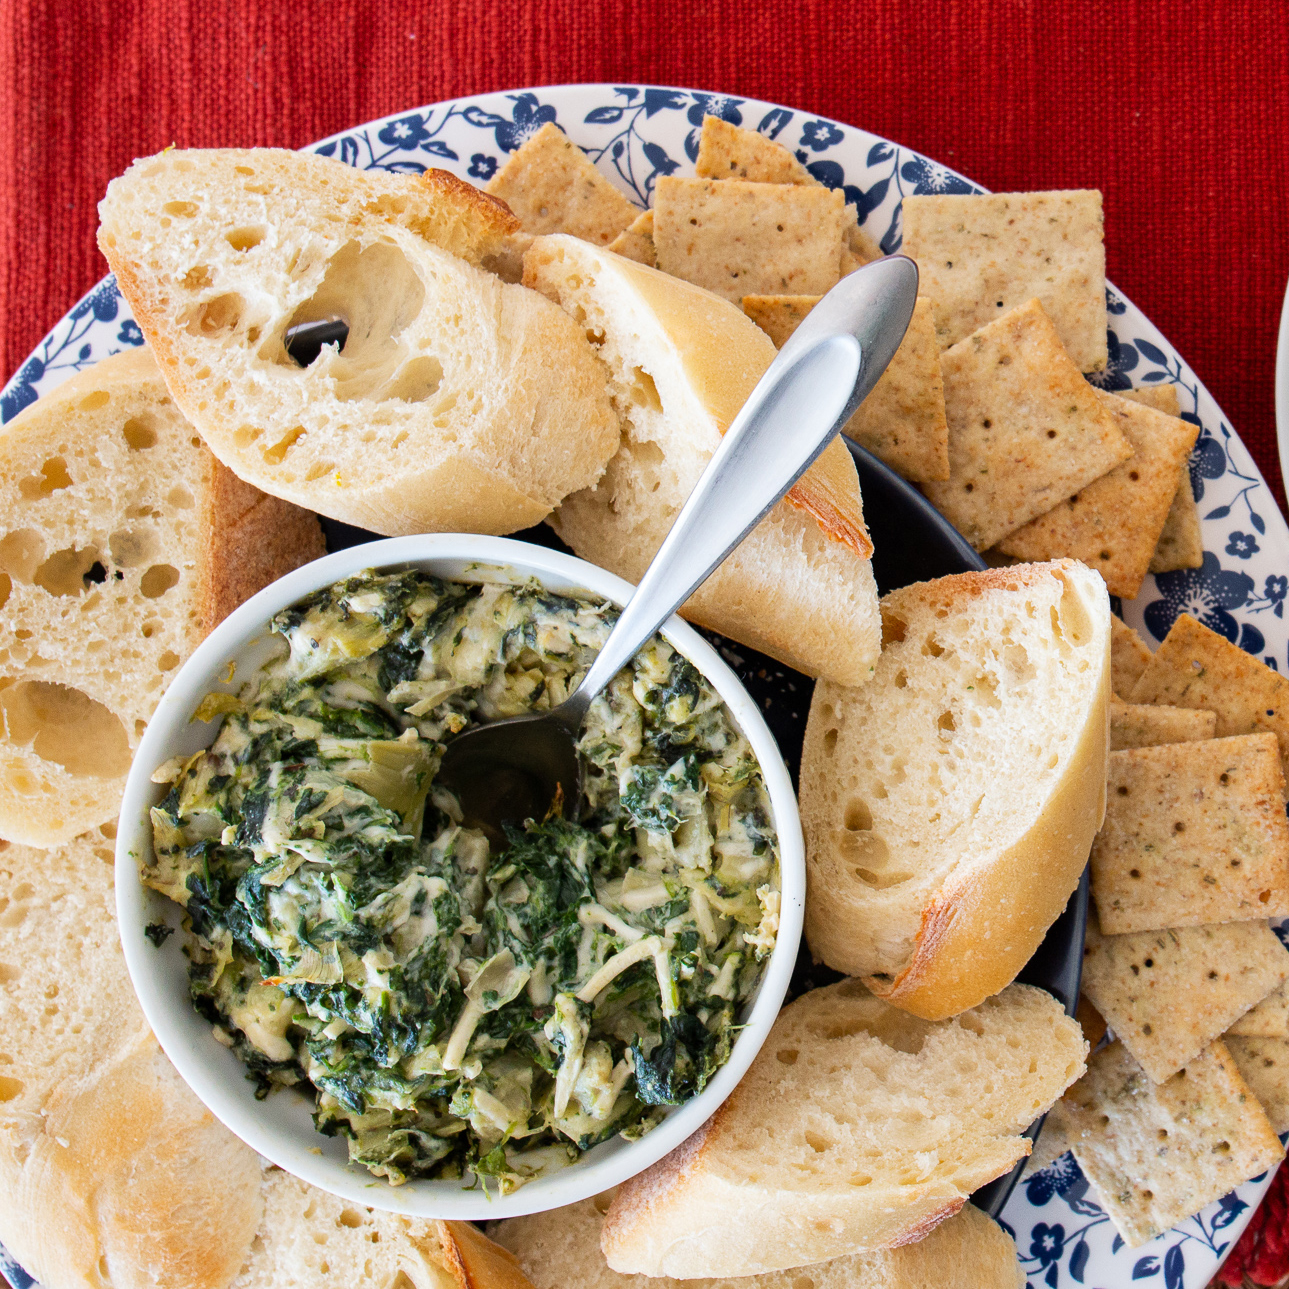 Vegan Hot Artichoke and Spinach Dip with bread and crackers